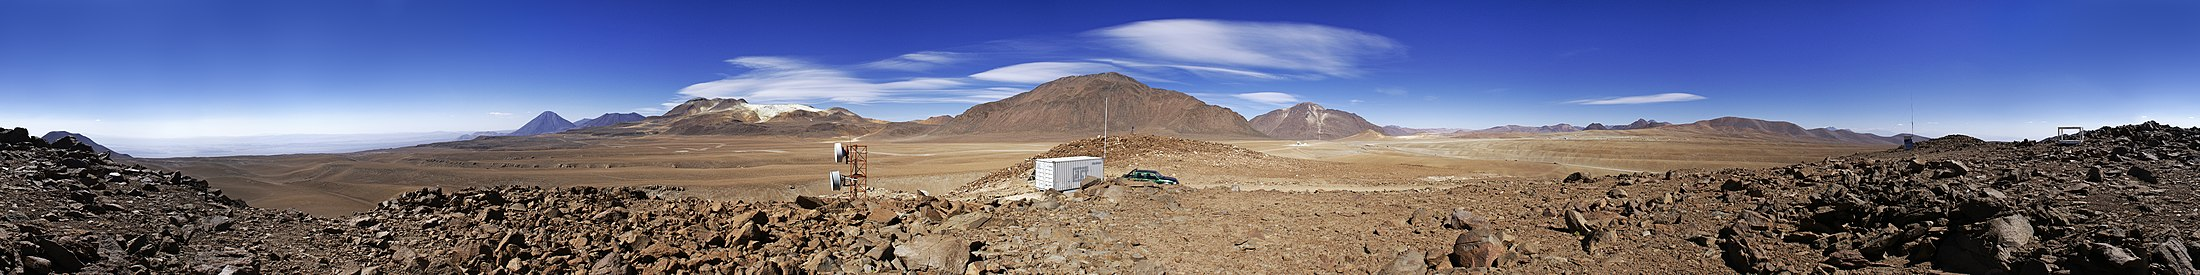 Landscape 360-degree panoramic picture of the Chajnantor plateau. In the center is Cerro Chajnantor itself. To the right, on the plateau, is the Atacama Pathfinder Experiment (APEX) telescope with Cerro Chascon behind it.[40] - Photography